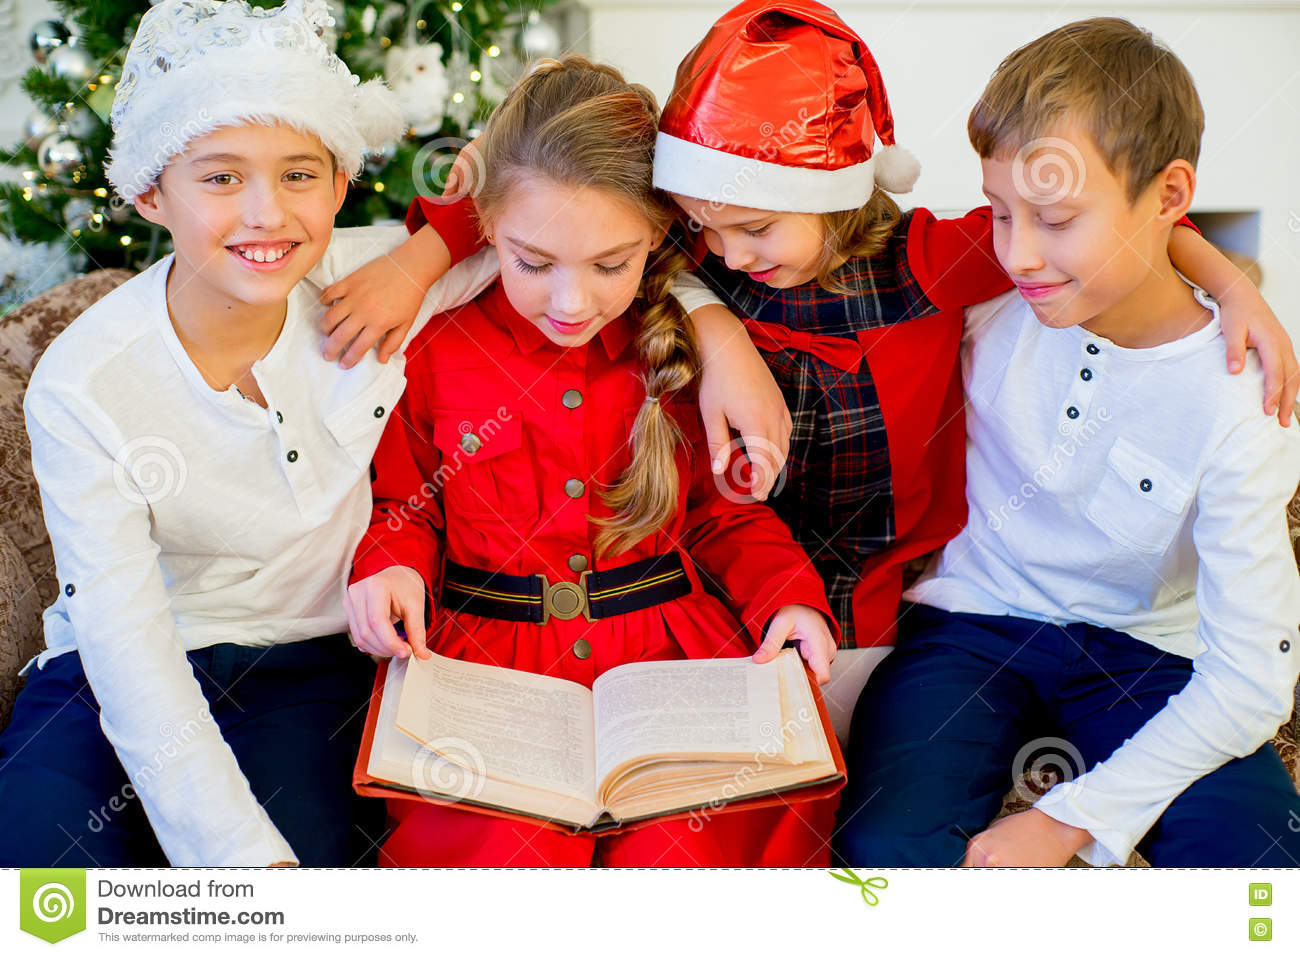 Kids Reading A Story Book On Christmas Time Stock Photo - Image of ...